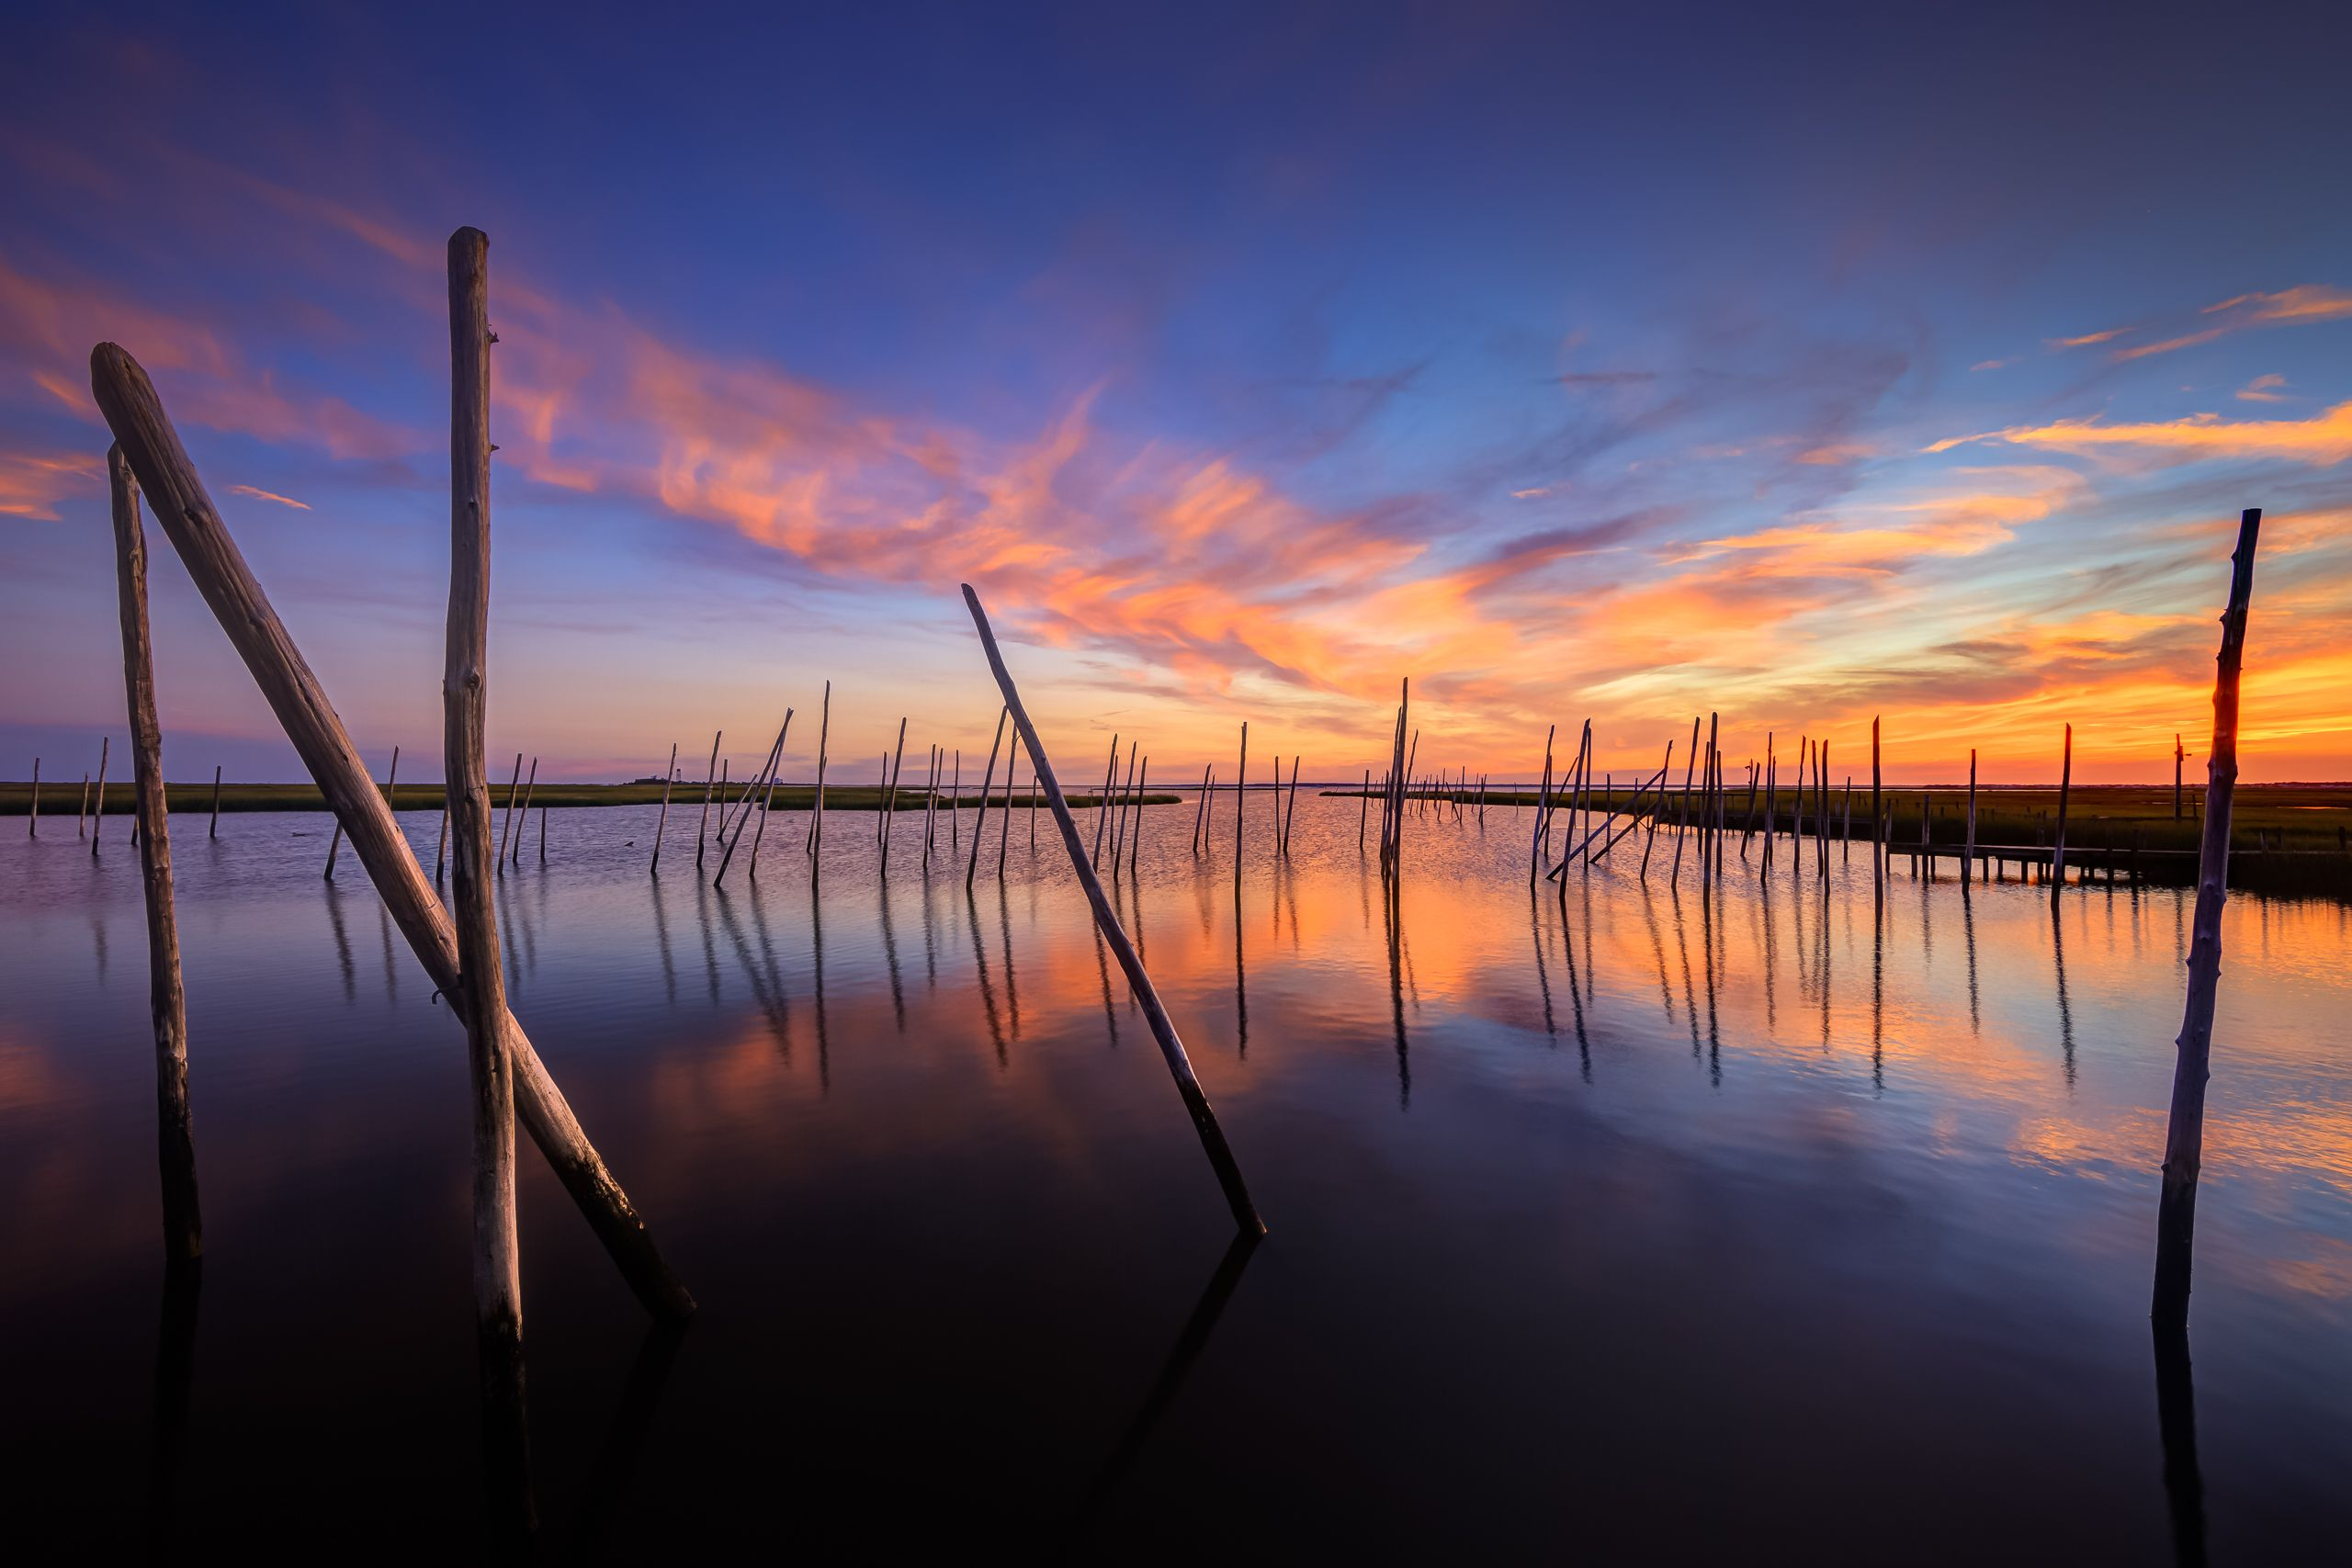 Wide angle HDR photograph of an abandoned marina and a